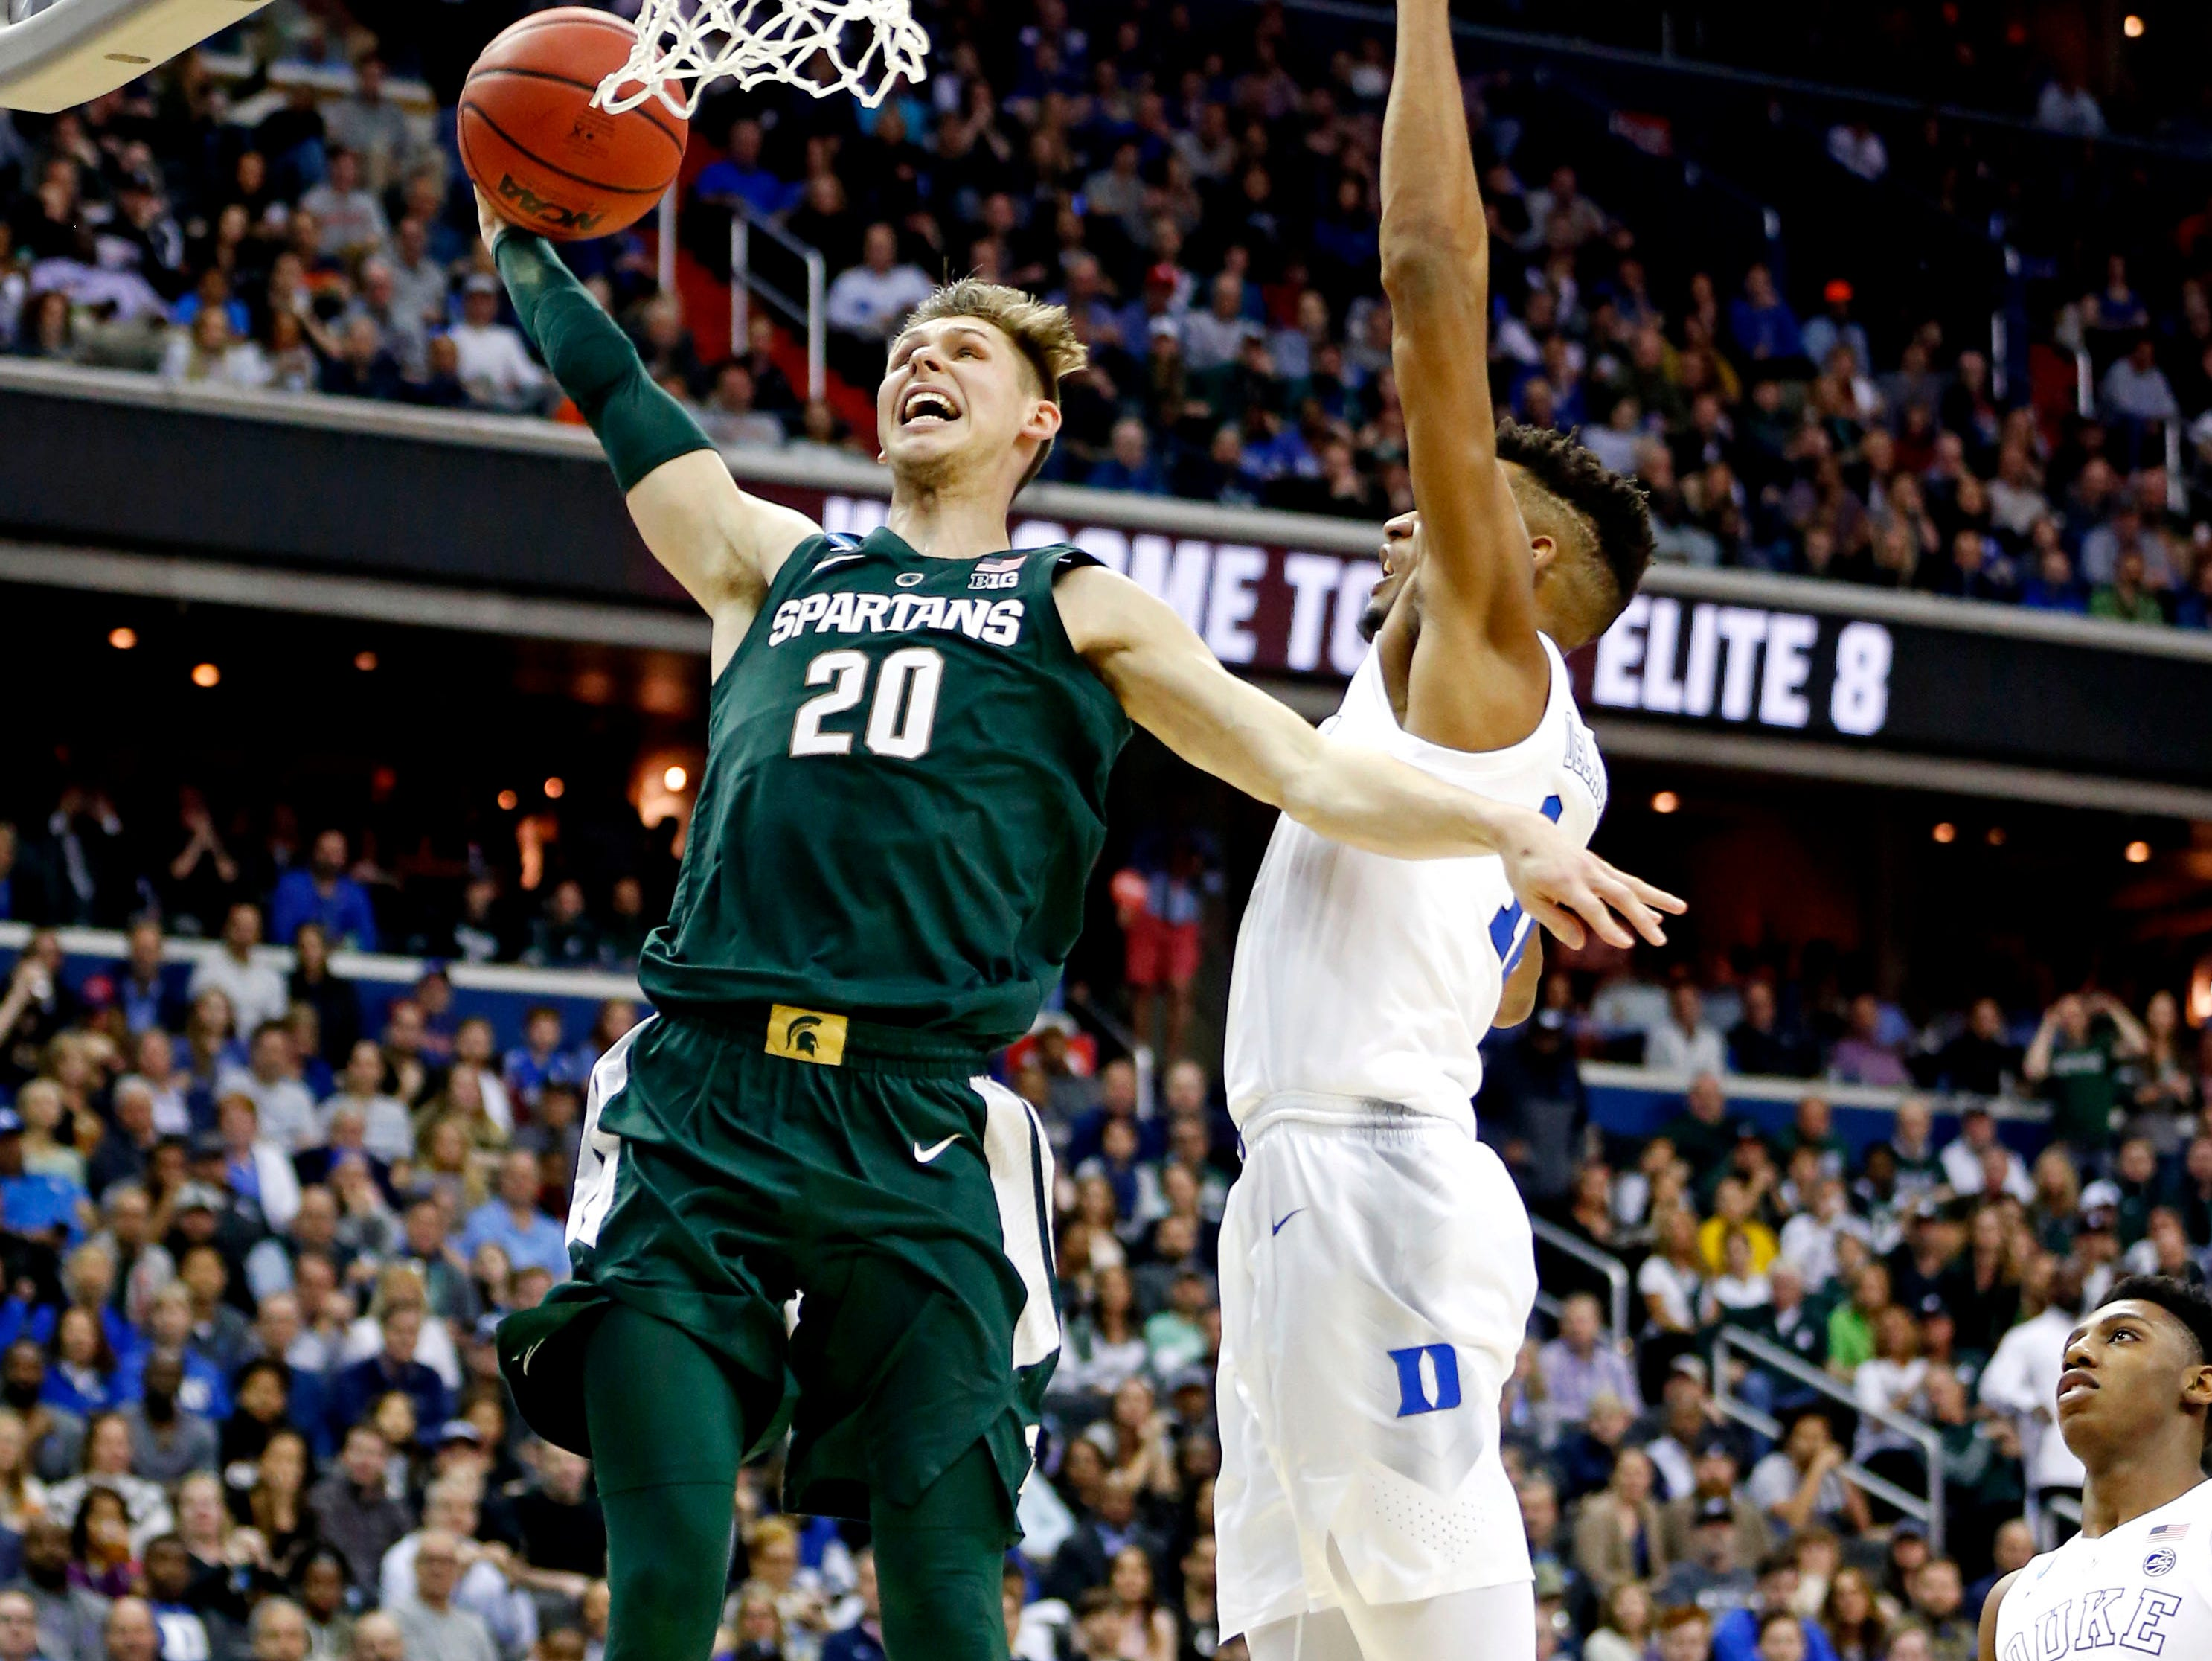 Michigan State Spartans guard Matt McQuaid (20) dunks the ball against Duke Blue Devils forward Javin DeLaurier (12) during the first half in the championship game of the east regional of the 2019 NCAA Tournament at Capital One Arena.